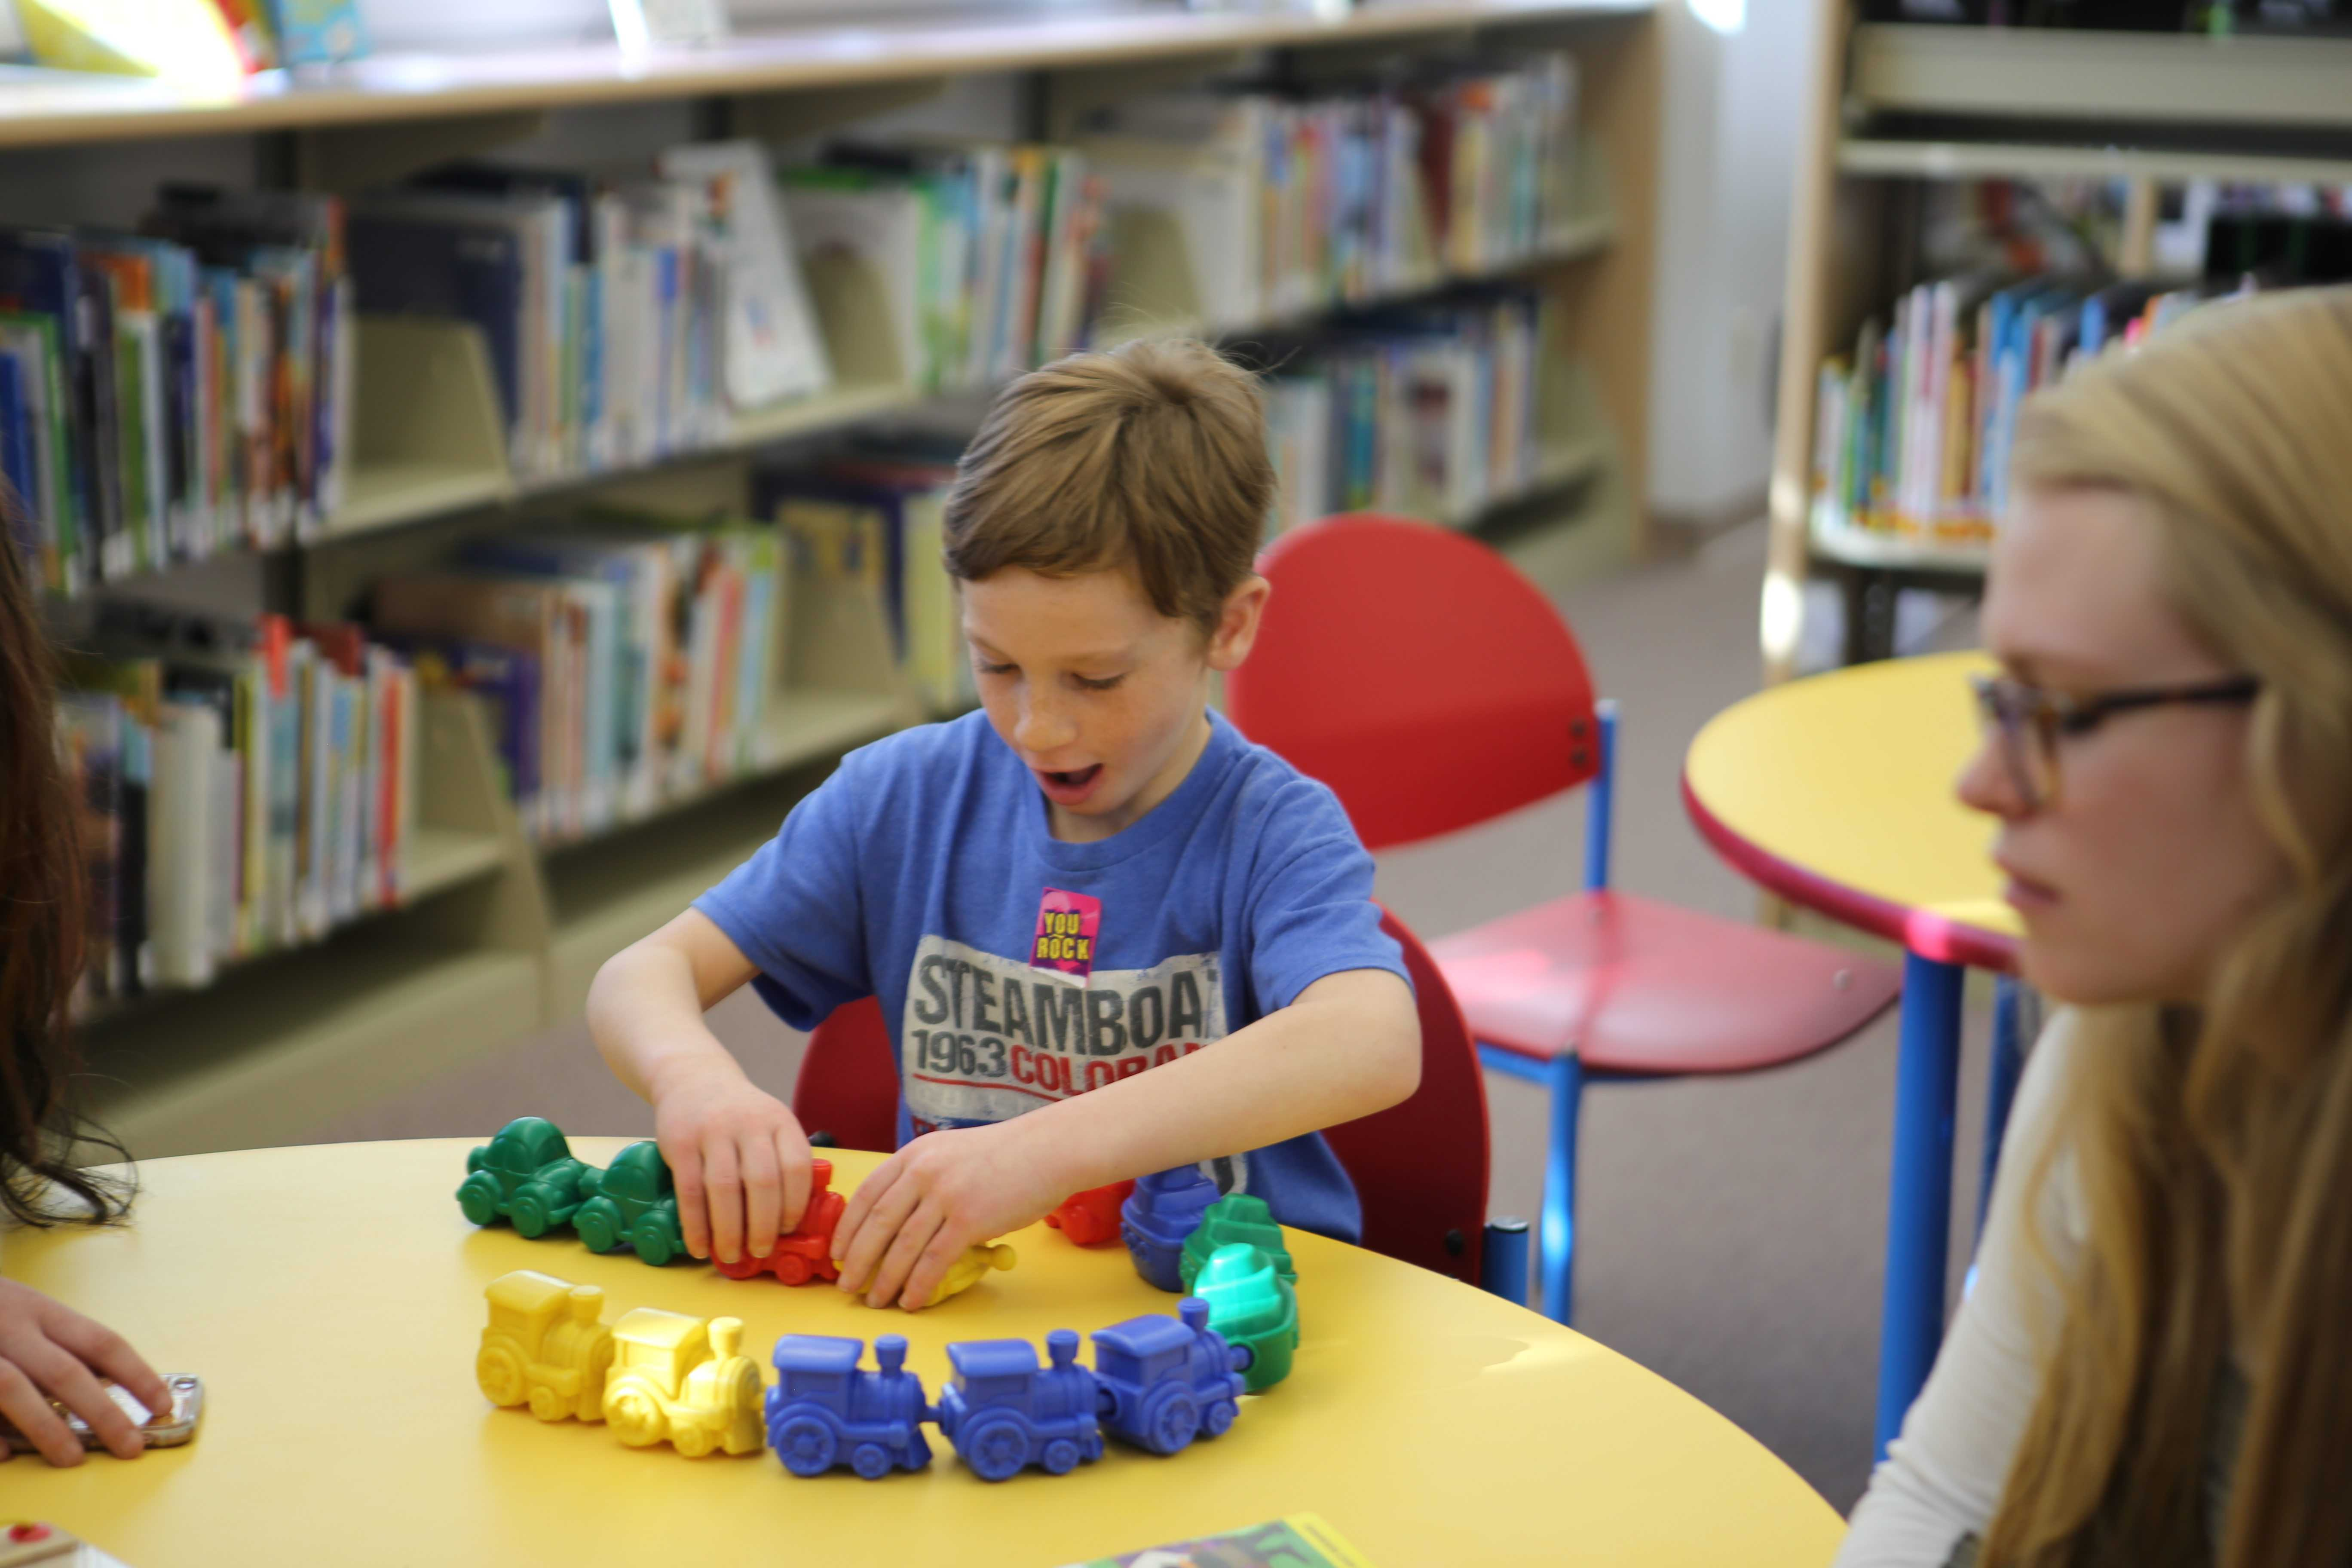 Luke Shepard's face lights with excitement as he plays with trains during Piaget play day on Thursday, March 2.